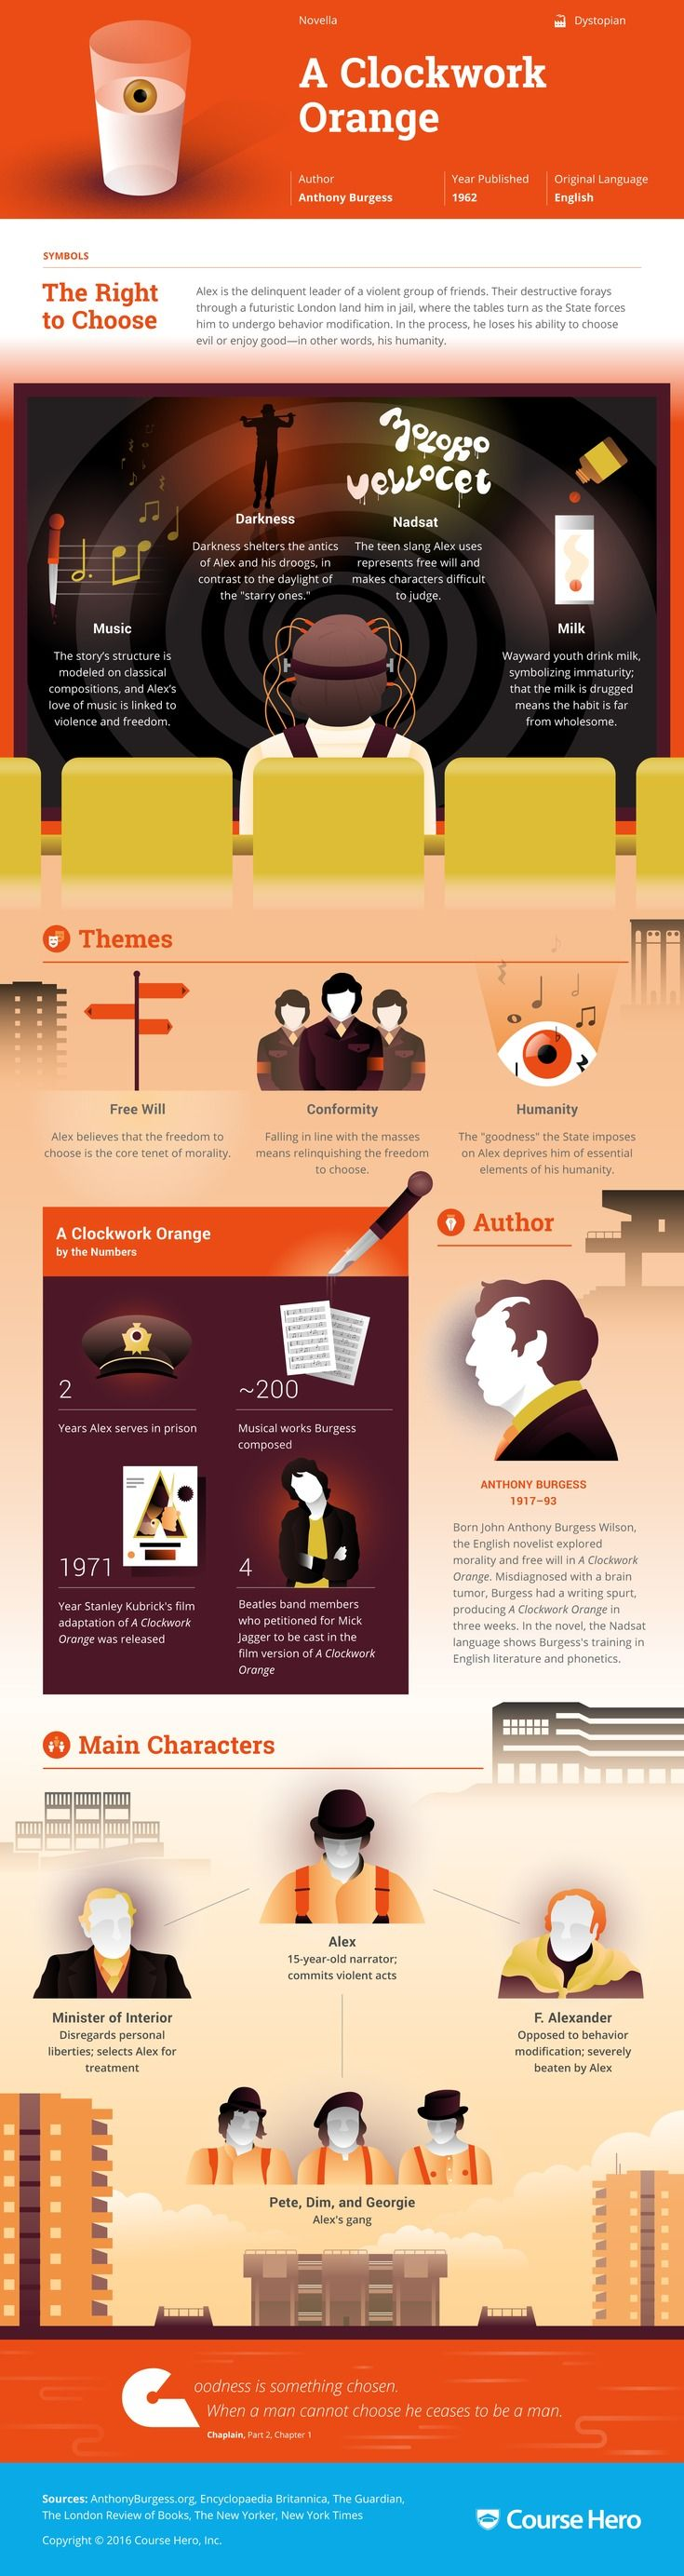 This @CourseHero infographic on A Clockwork Orange is both visually stunning and informative!